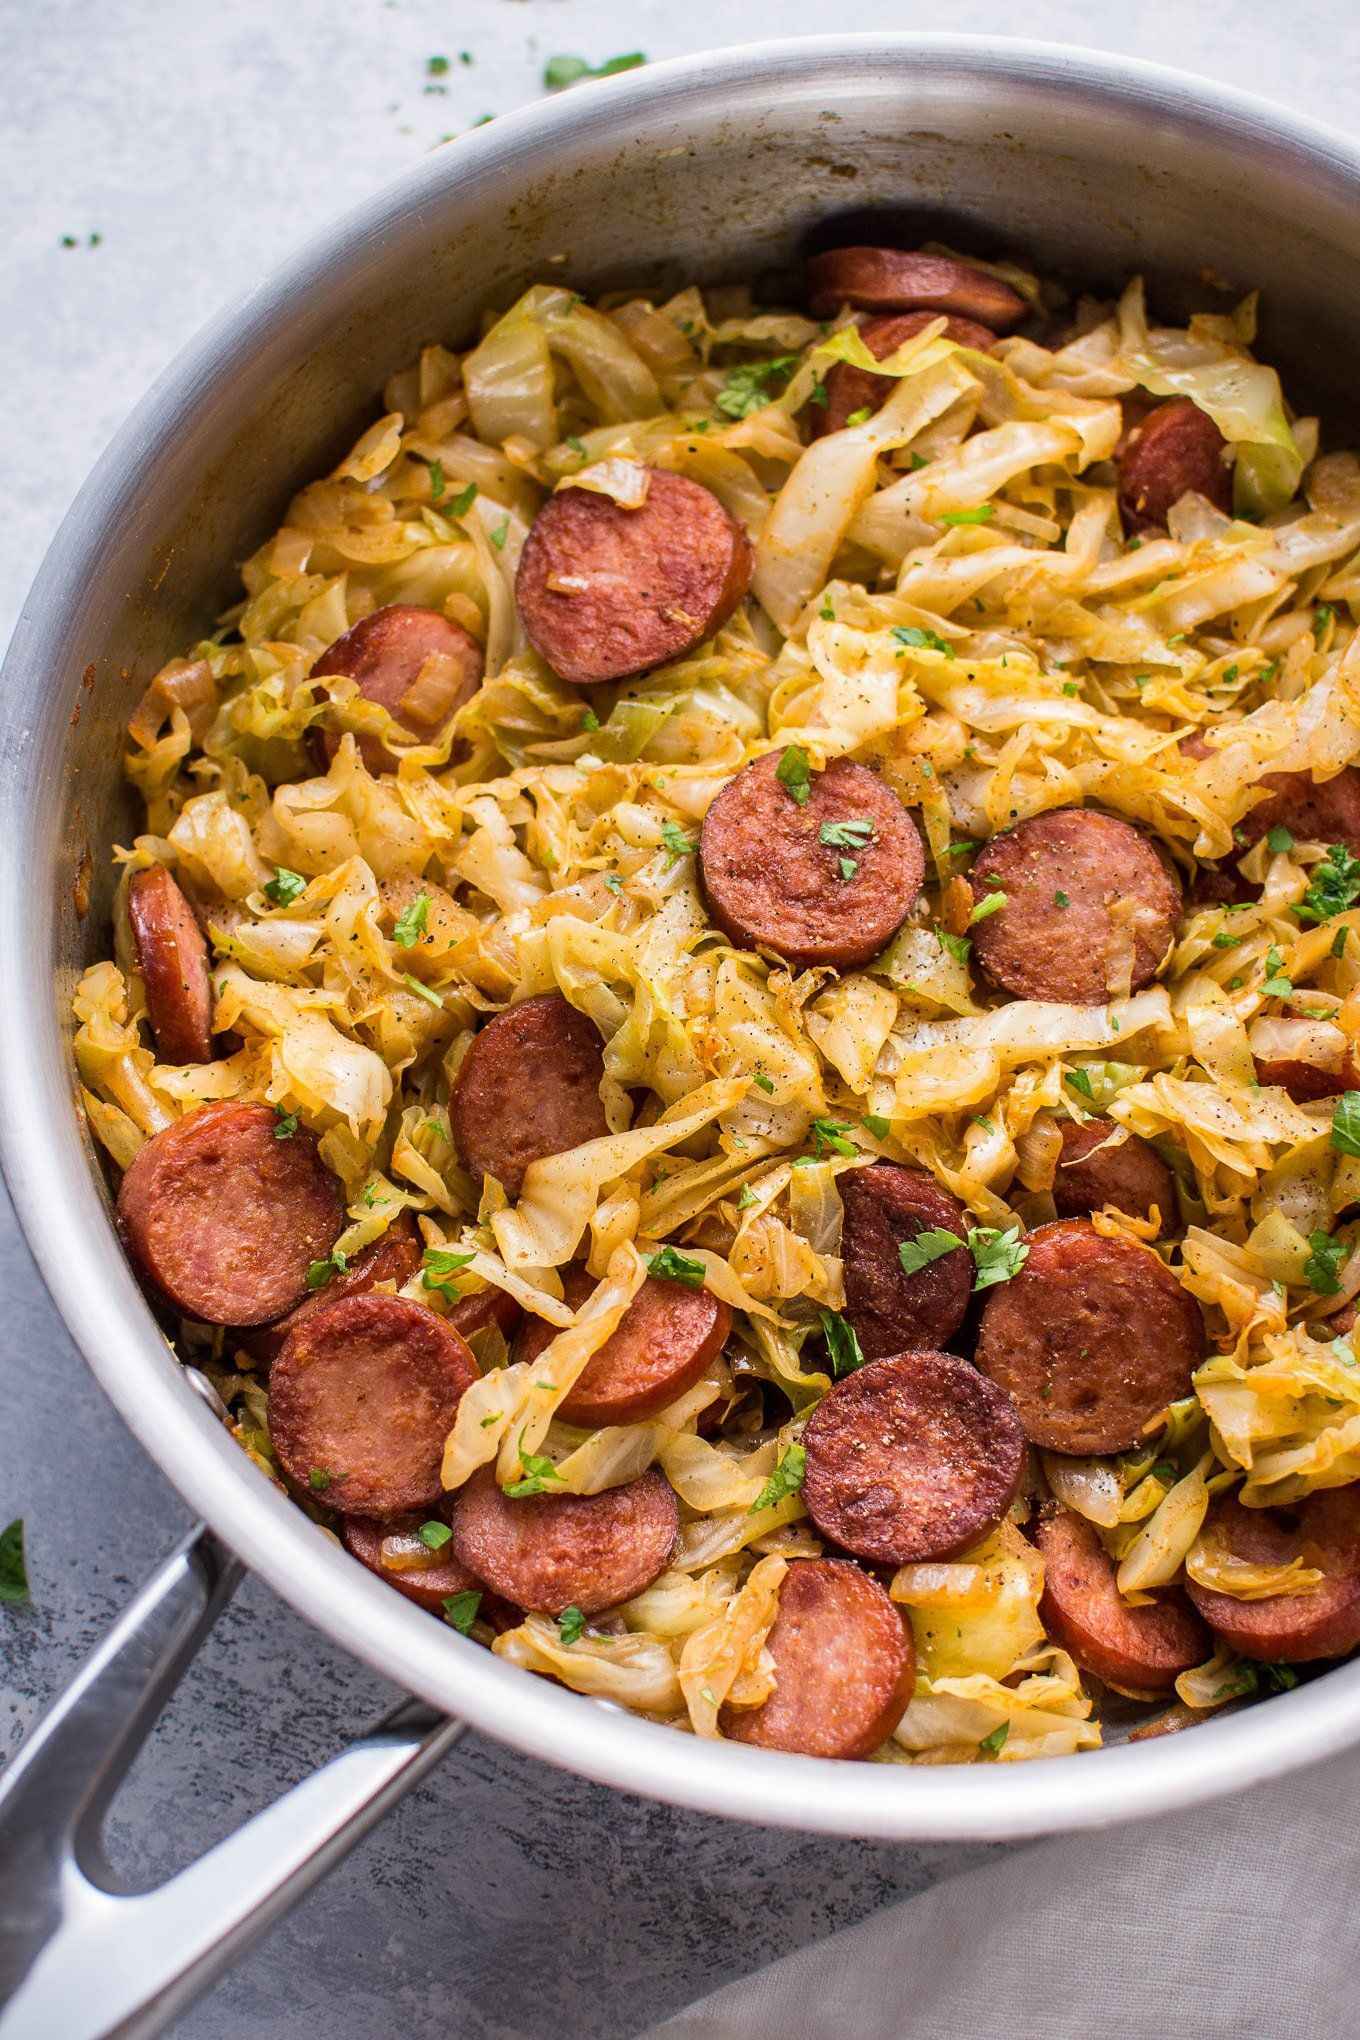 Calorie cabbage. Cabbage Dishes 77